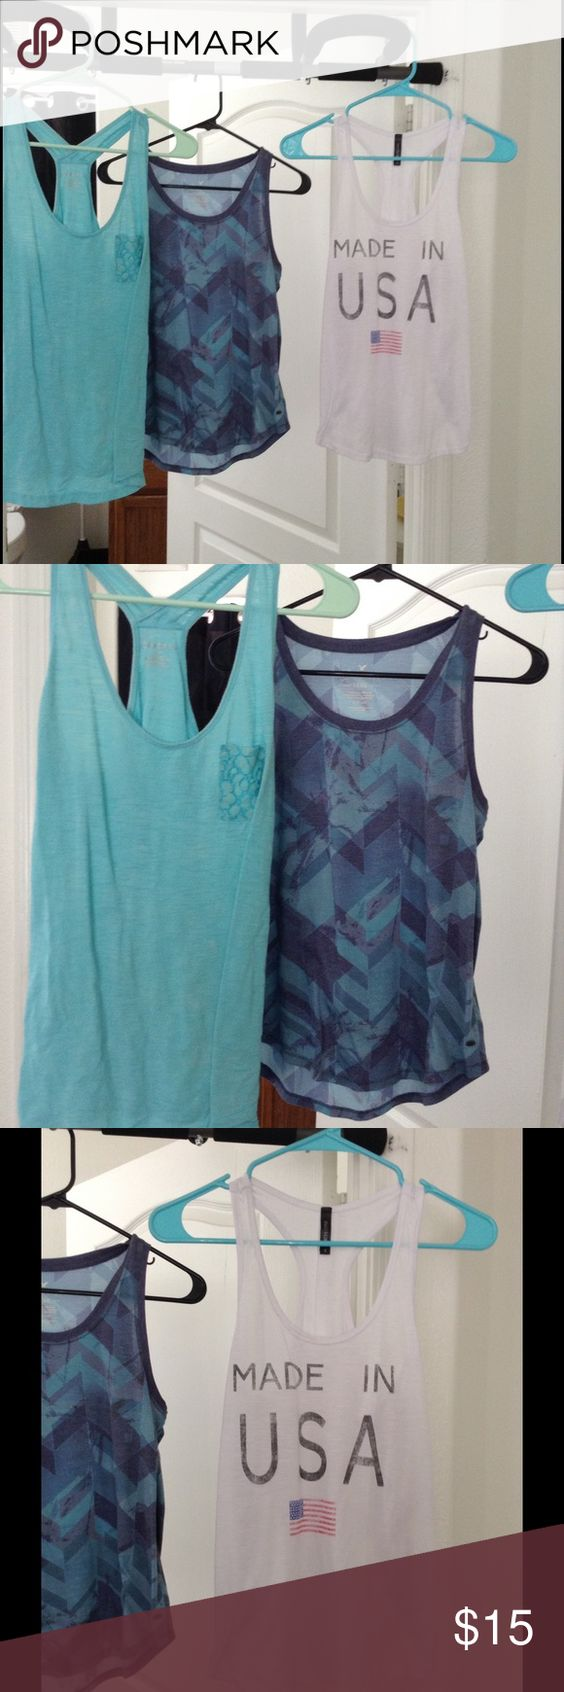 Tank tops All size small. In good condition. From American eagle, Tillys, and target.  You get all 3 American Eagle Outfitters Tops Tank Tops